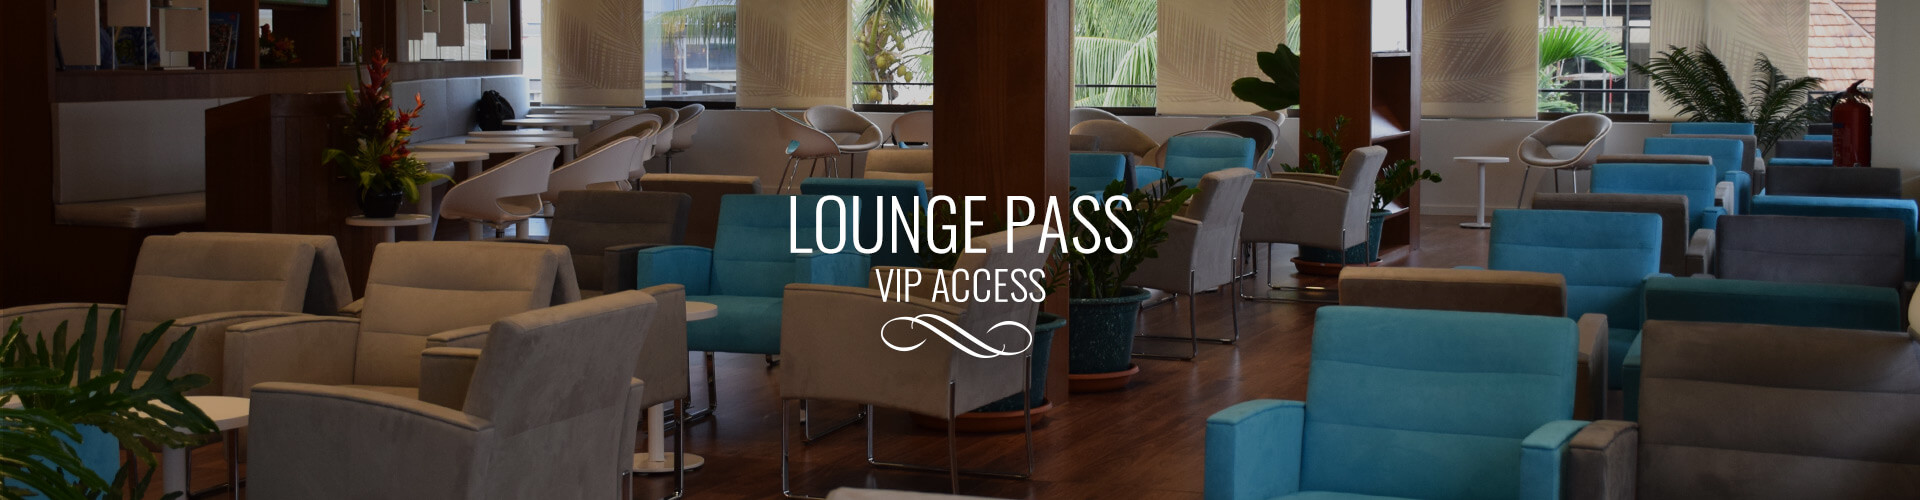 main image of the lounge pass with the tahiti airport lounge